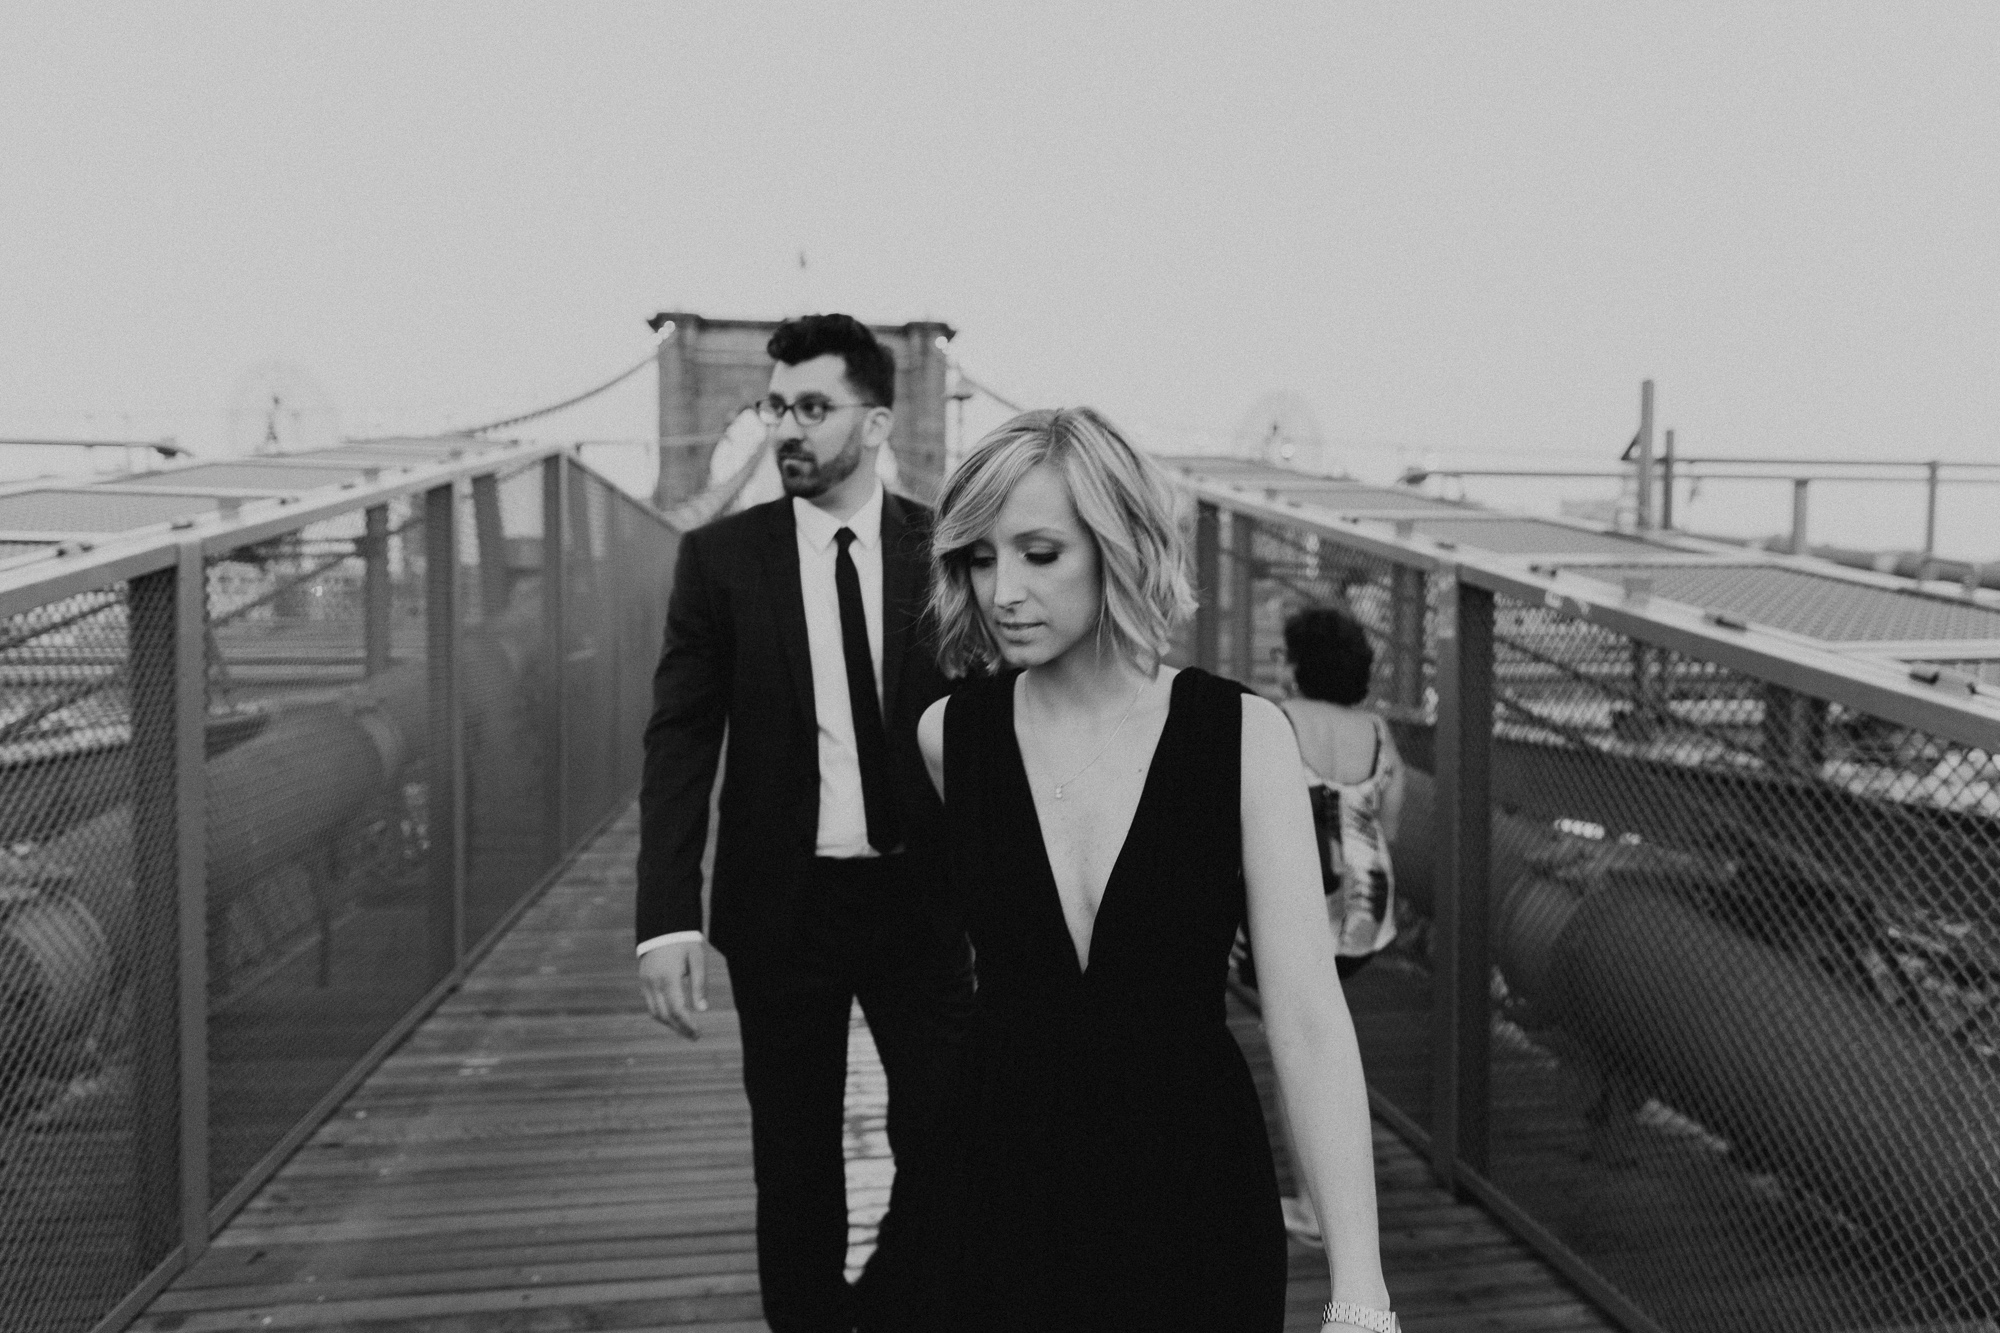 brooklyn_nyc_engagement_photography-78-of-83.jpg